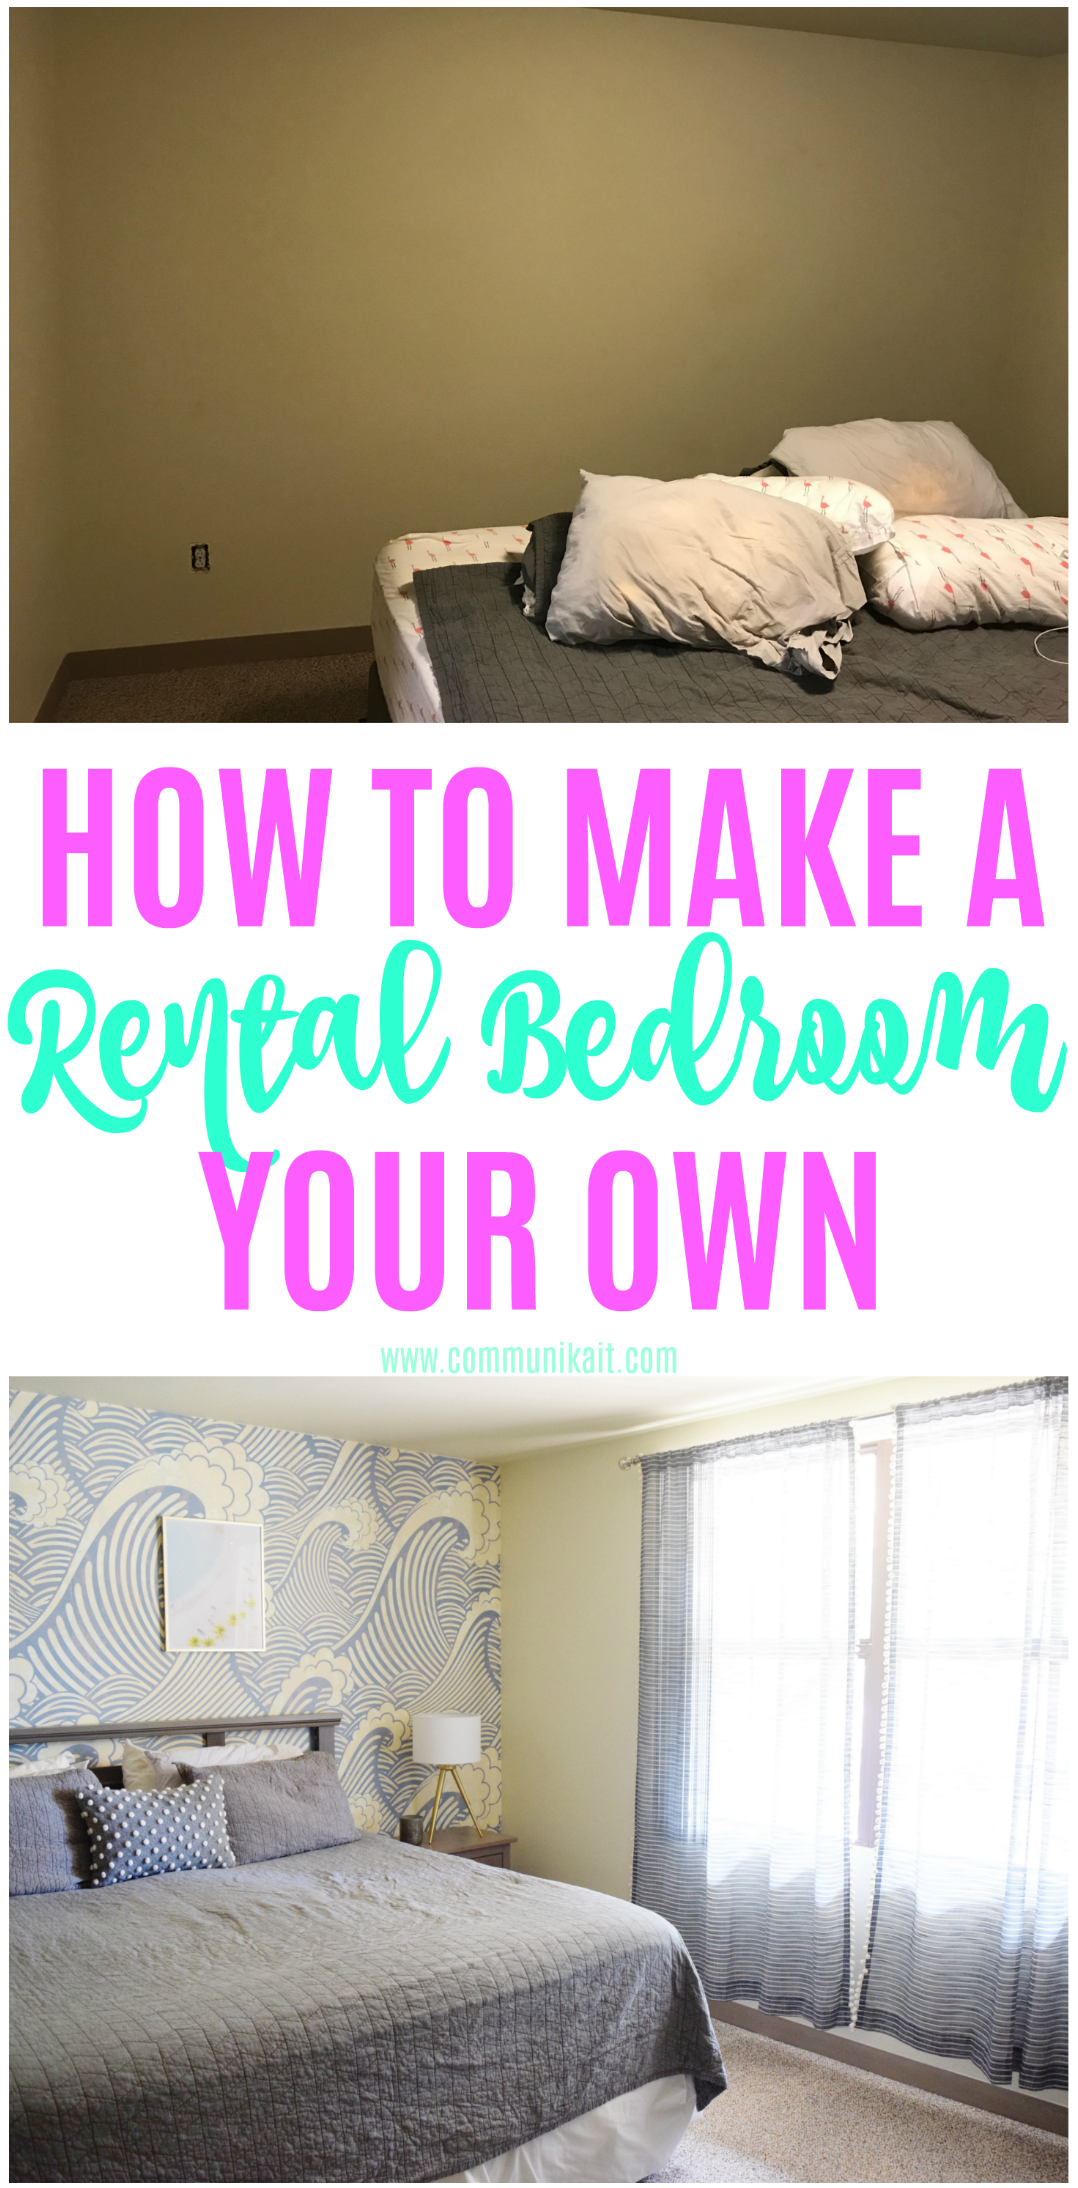 How To Make A Rental Your Own: Master Bedroom Edition -Rental House Decorating - Rental House Hacks - Ideas For Decorating Rental House - Rental House Upgrades On A Budget - Communikait by Kait Hanson